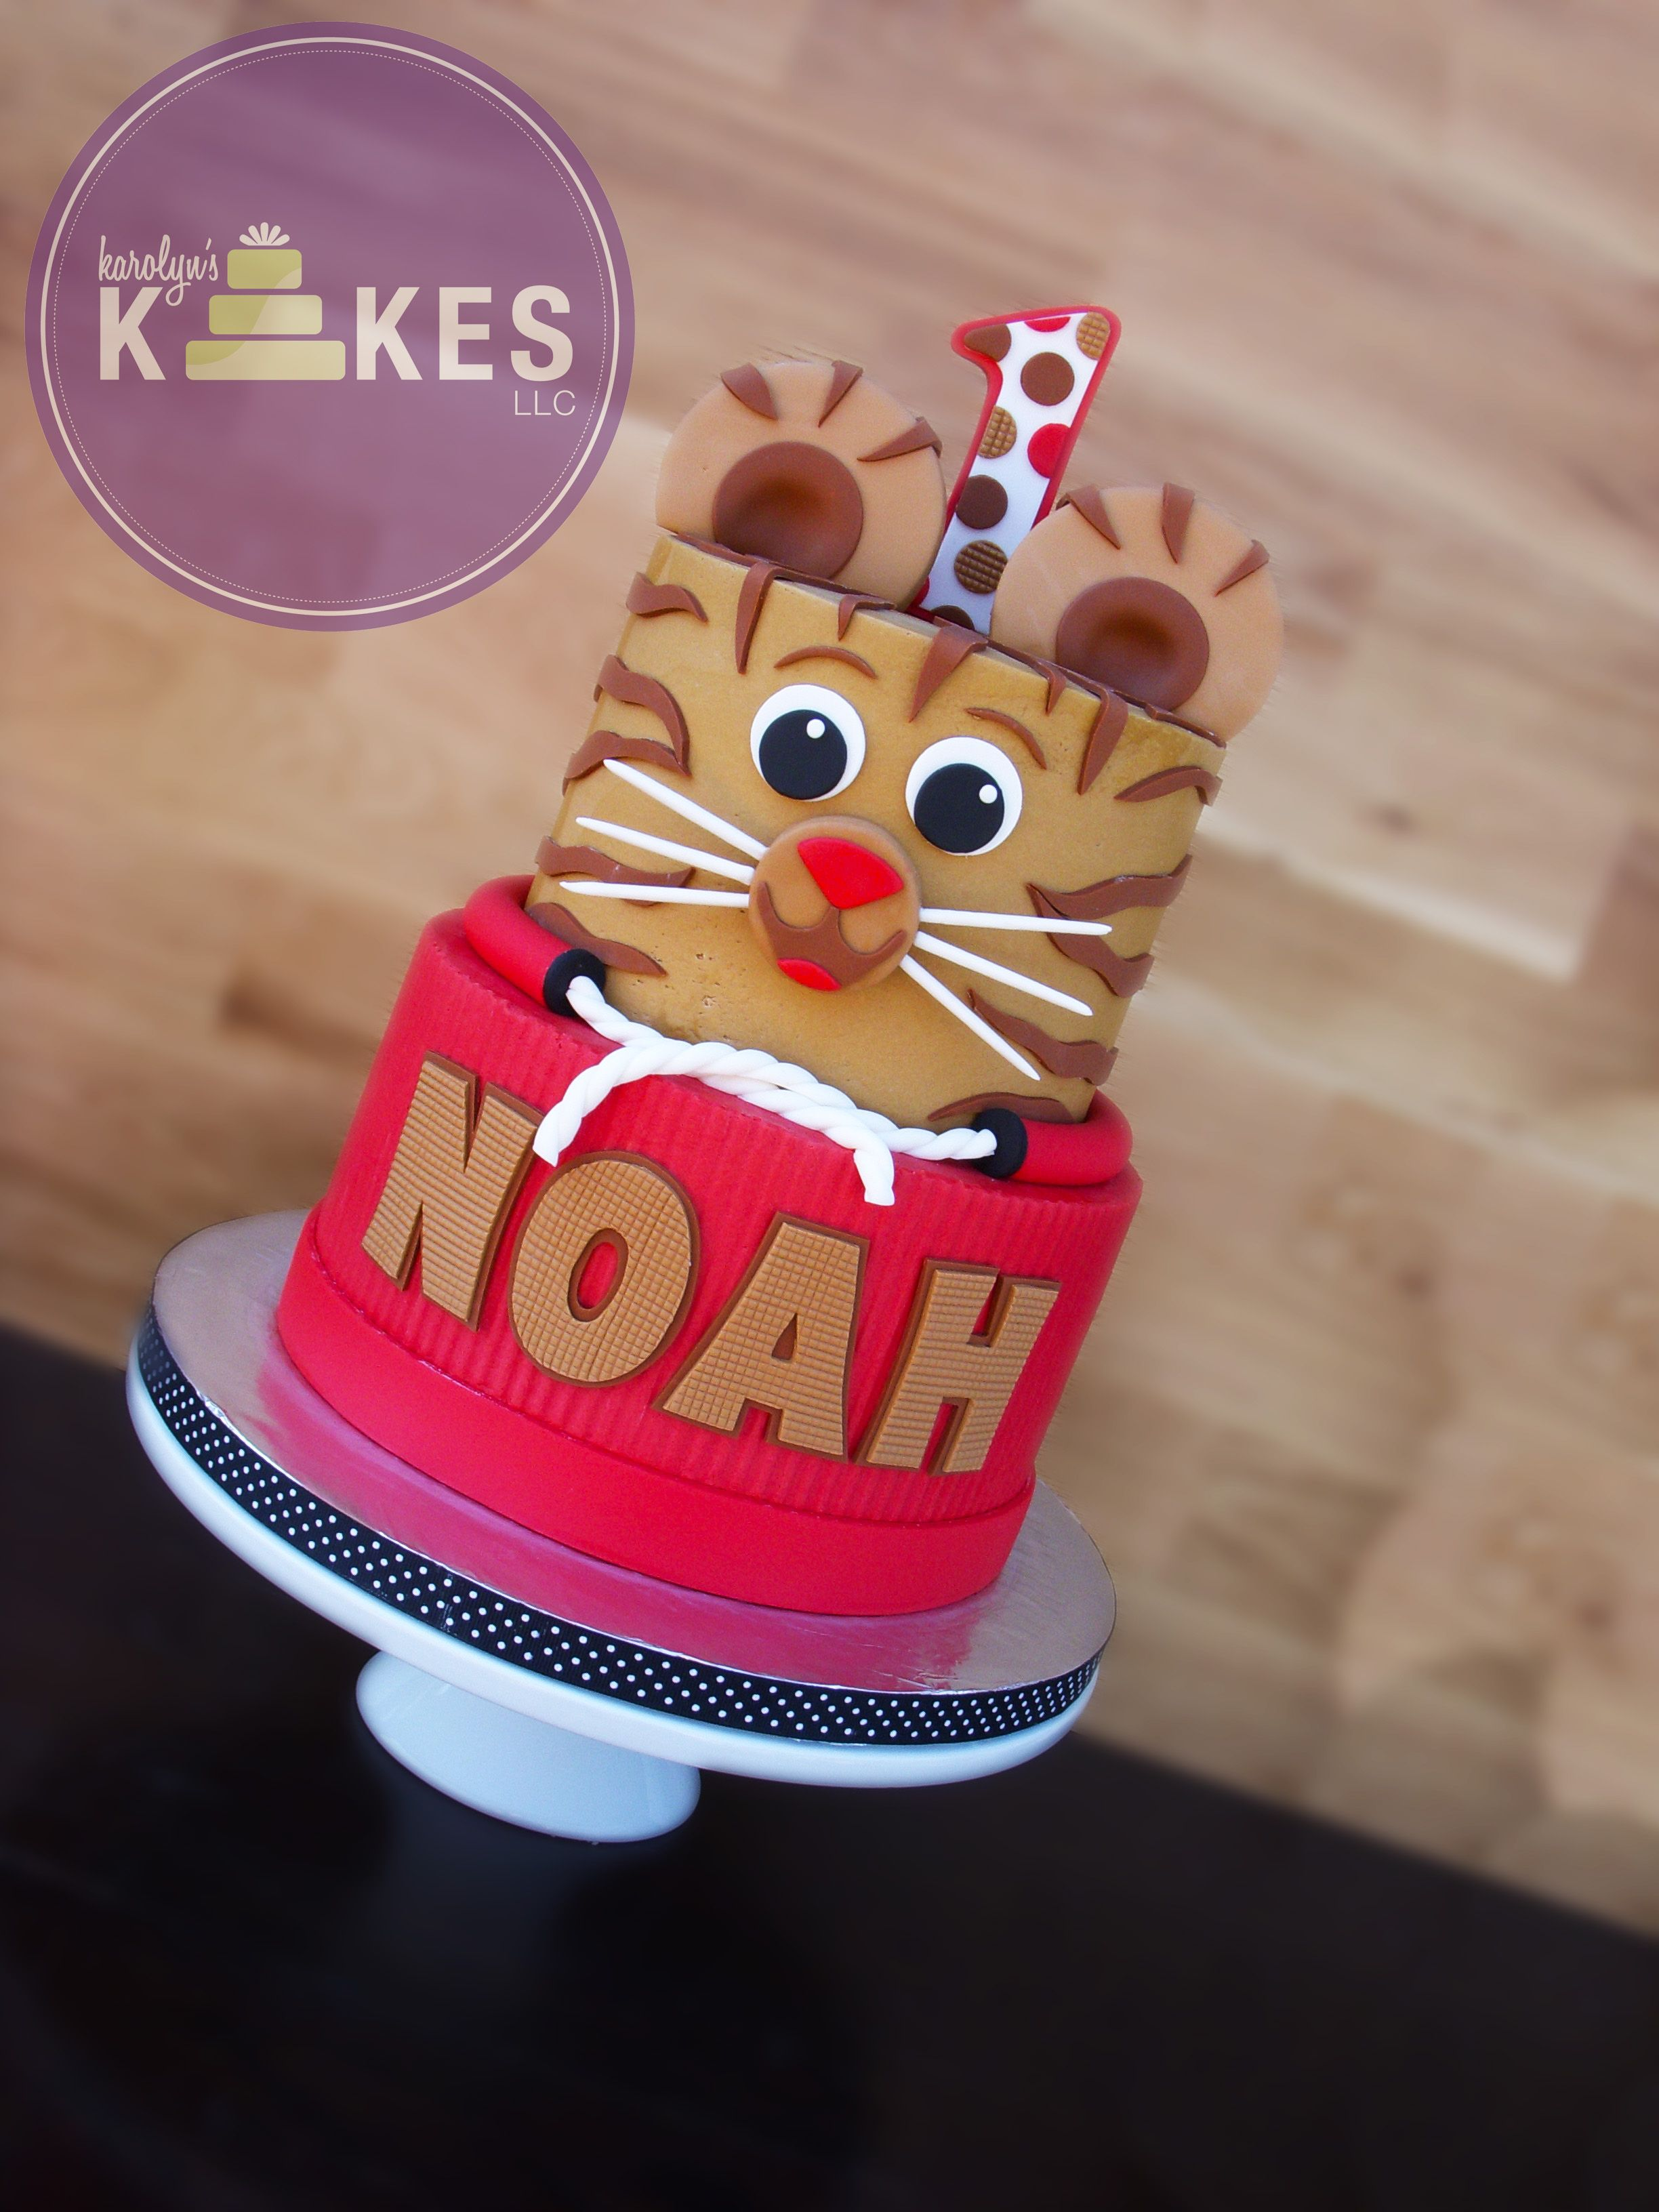 Daniel tiger kake based on one of my previous designs